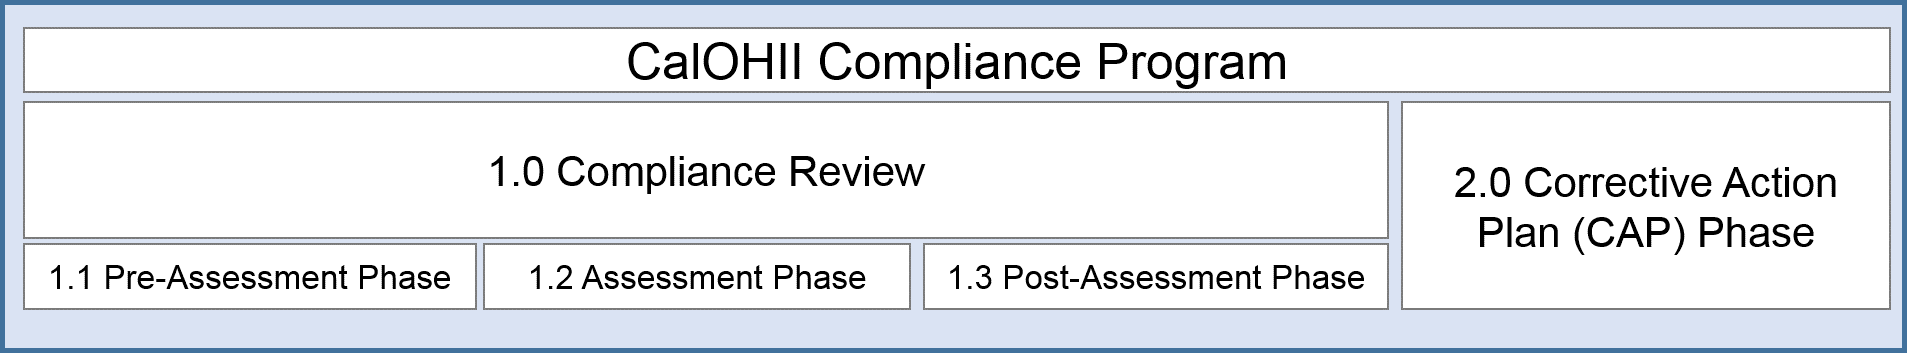 CalOHII Compliance Program process diagram - shows the 2 main phases of the compliance process (the review and the corrective action plan). For the Compliance Review phase - this is broken into 3 sub phases - the Pre-Assessment, Assessment and Post Assessment Phase.